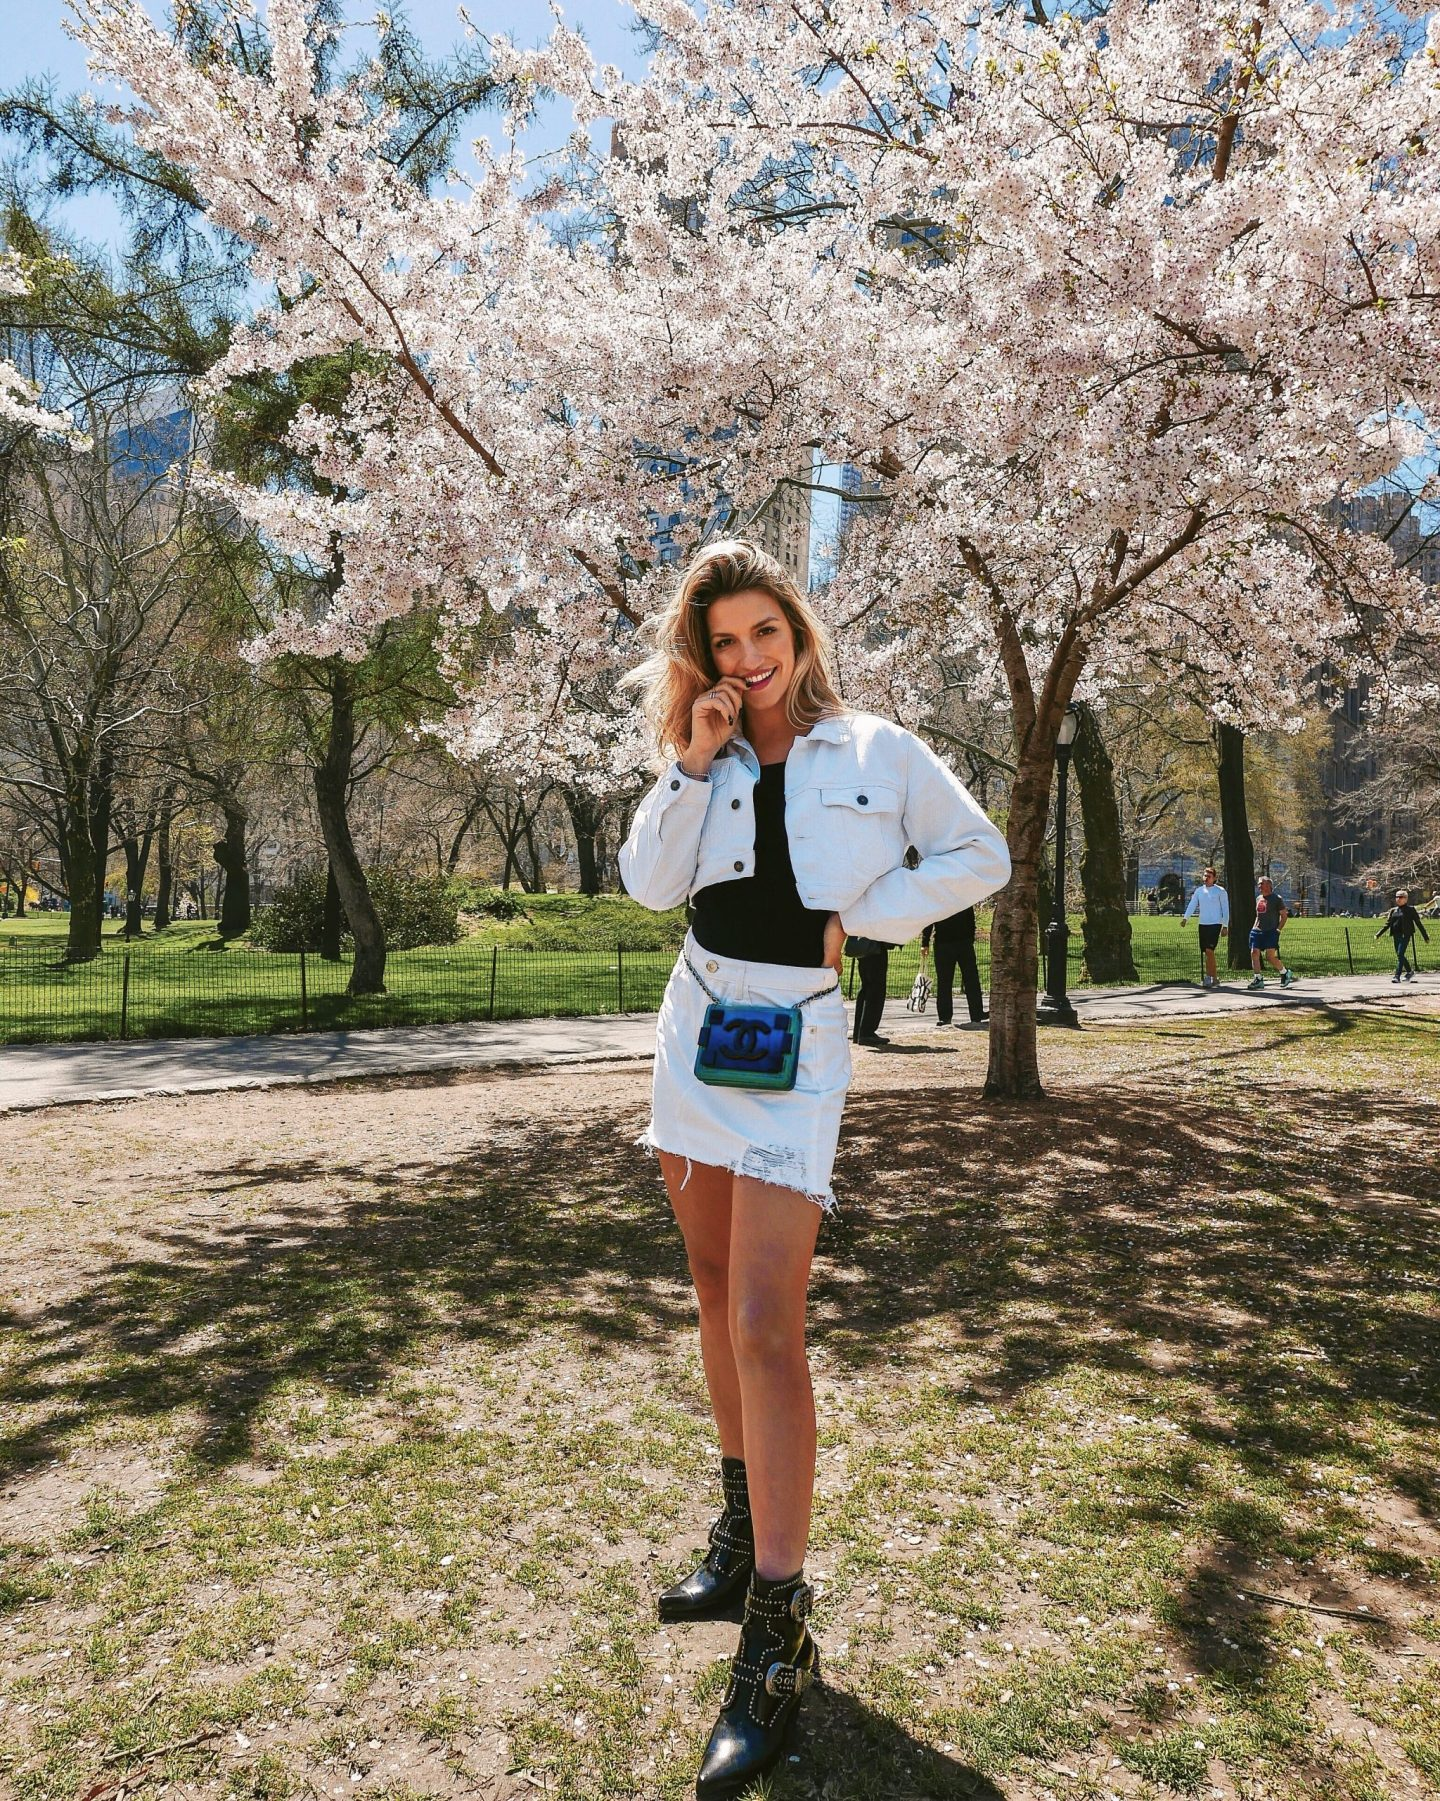 Cassandra DiMicco, Cass DiMicco, Dressed For Dreams, NYC, New York City, New York, Street Style NYC, Street Style 2018, NYC Street Style Street Style Outfits, 2018 Trends, NYC Fashion Blogger, Central Park, Western Boots, Western Booties, White Denim Jacket, White Denim Skirt, Chanel Crossbody Bag, NYC Instagram Spots